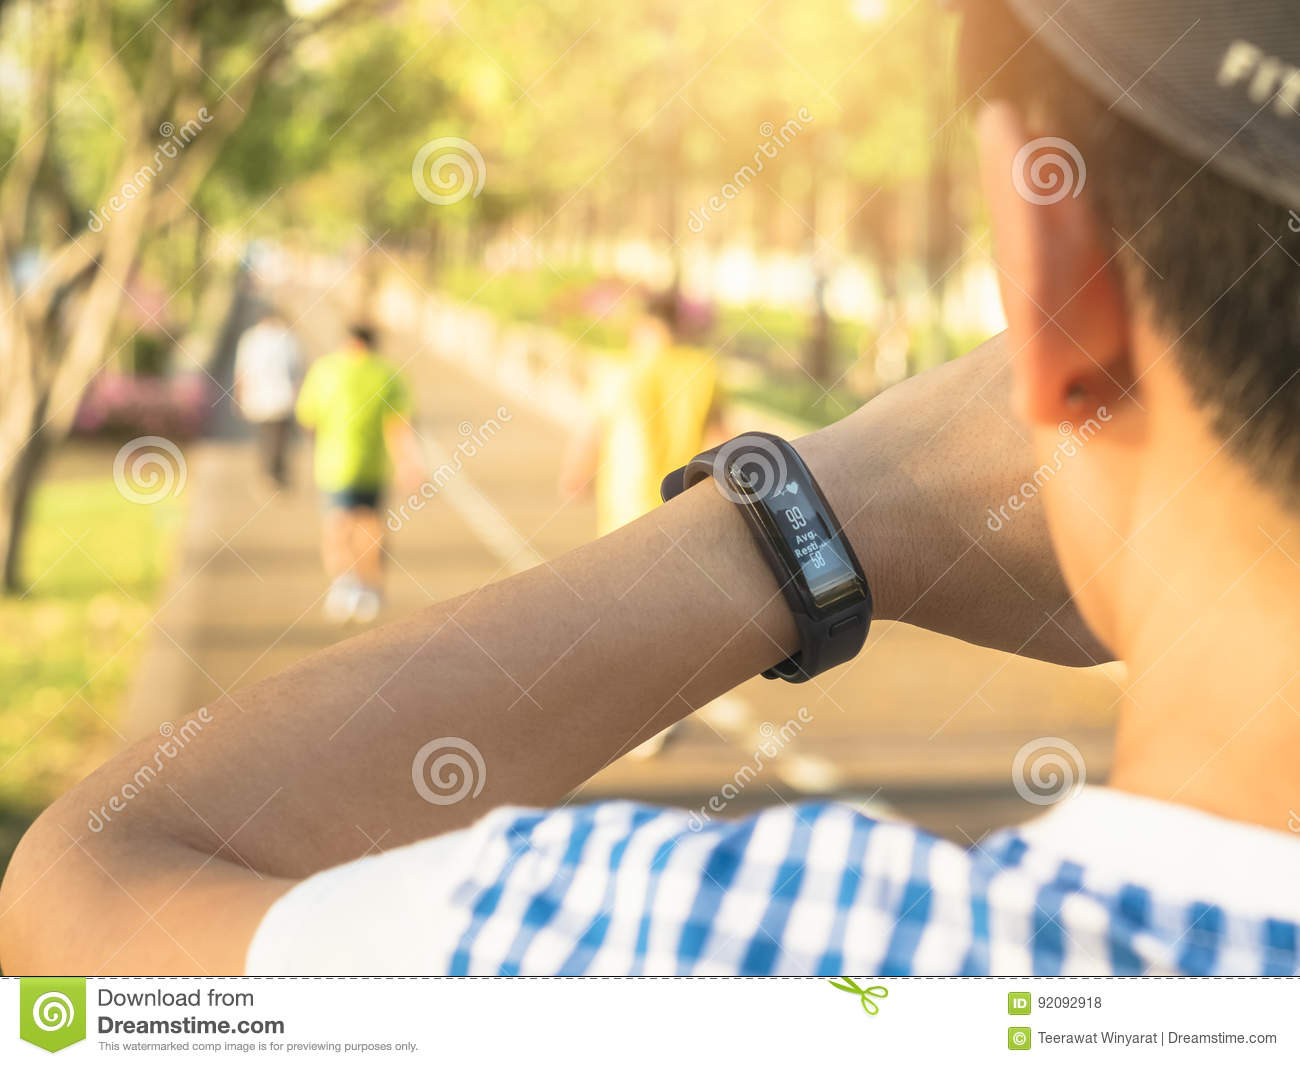 Woman Checking Heart Rate Exercise Workout Fitness Outdoor